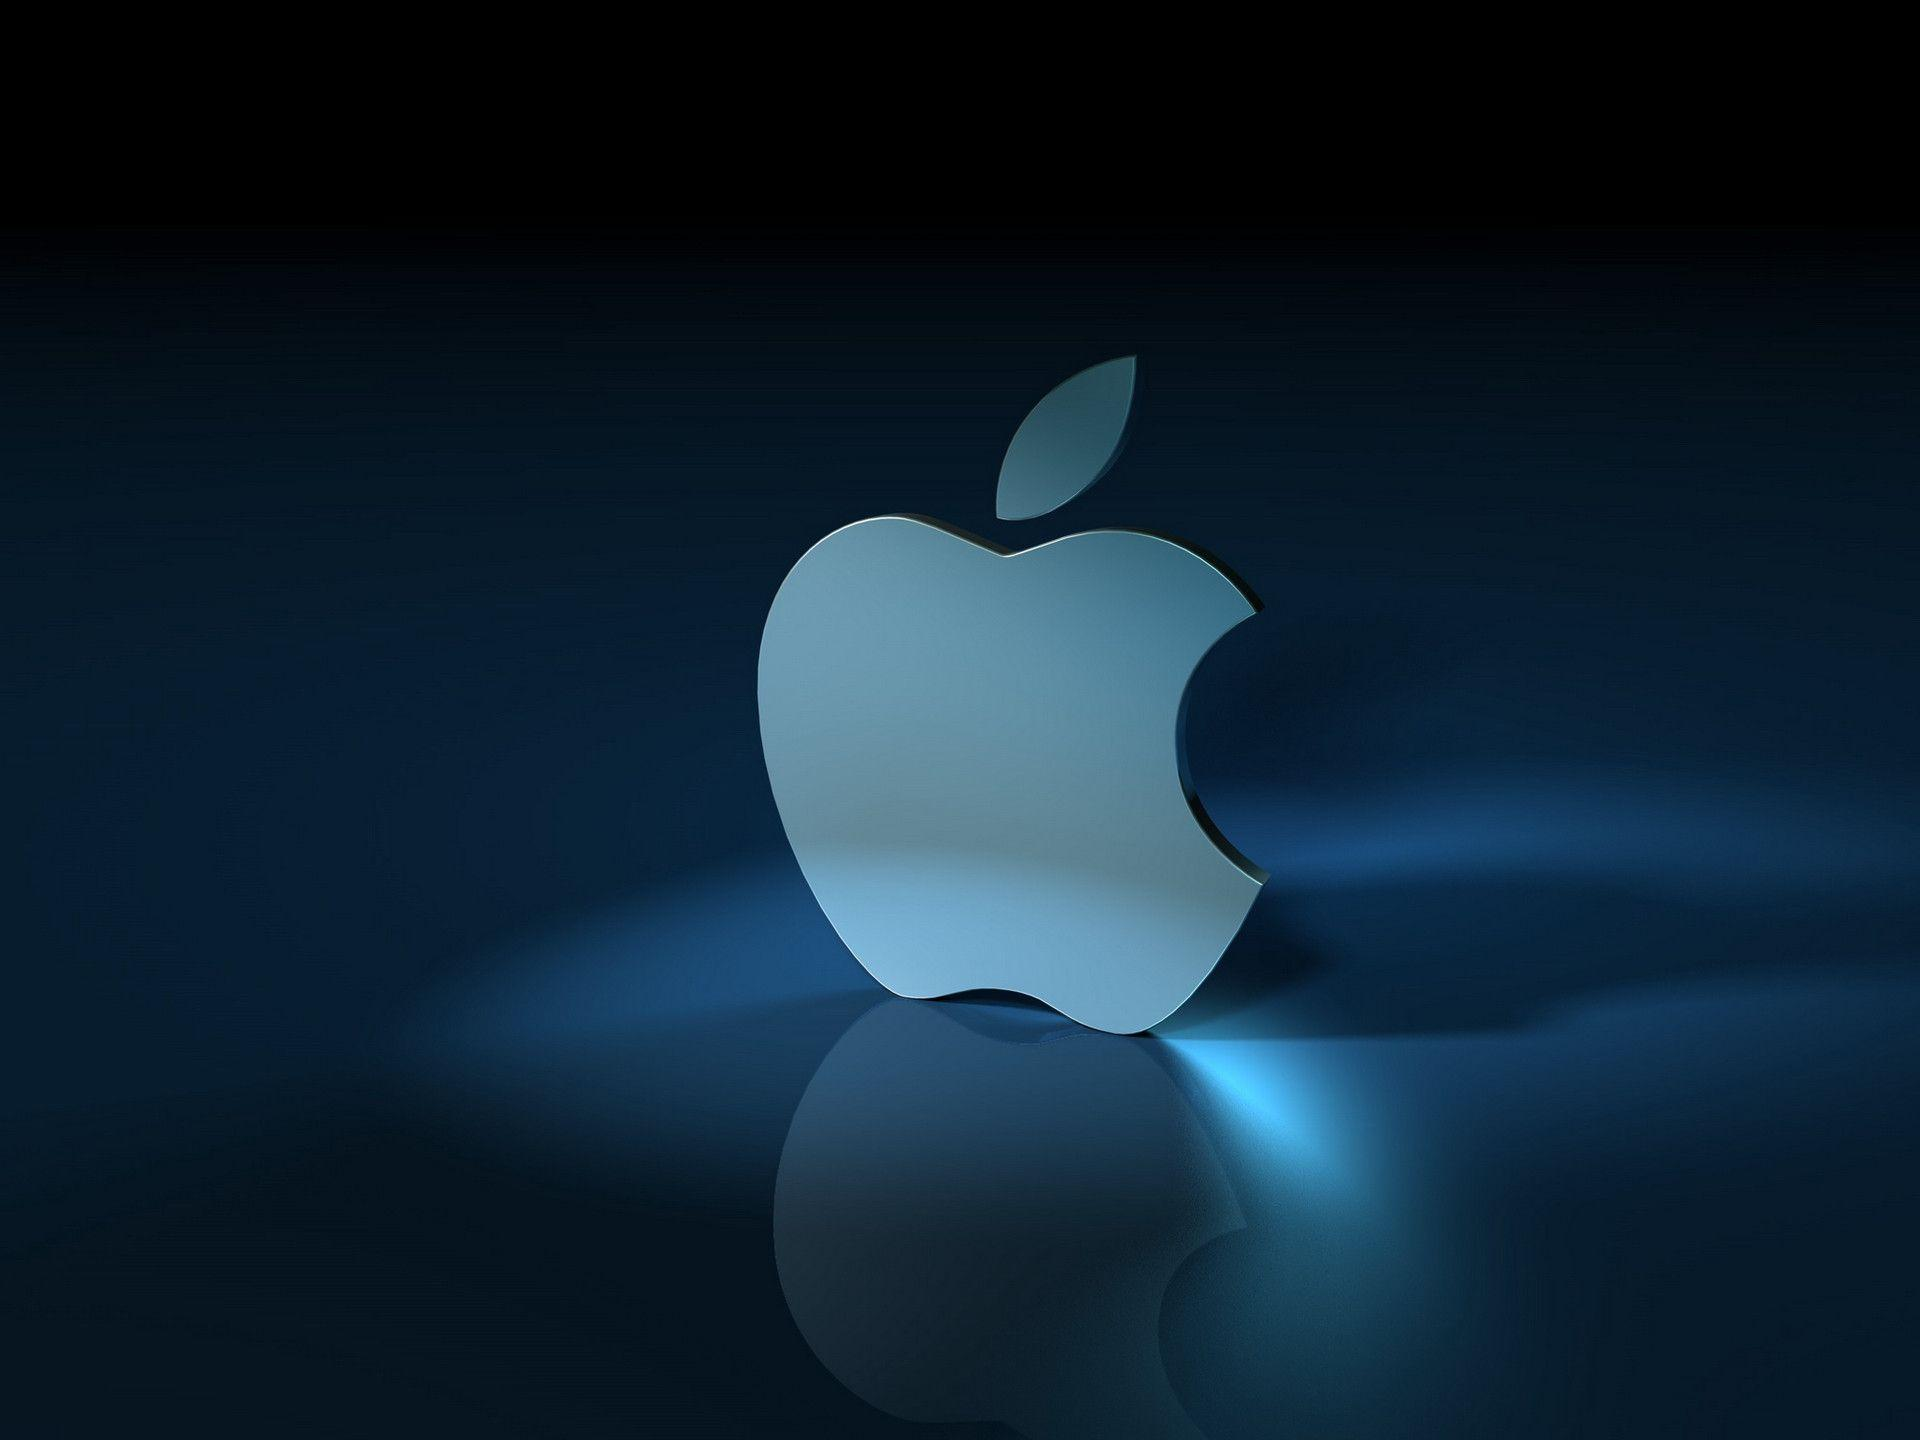 Apple 3d Wallpapers Top Free Apple 3d Backgrounds